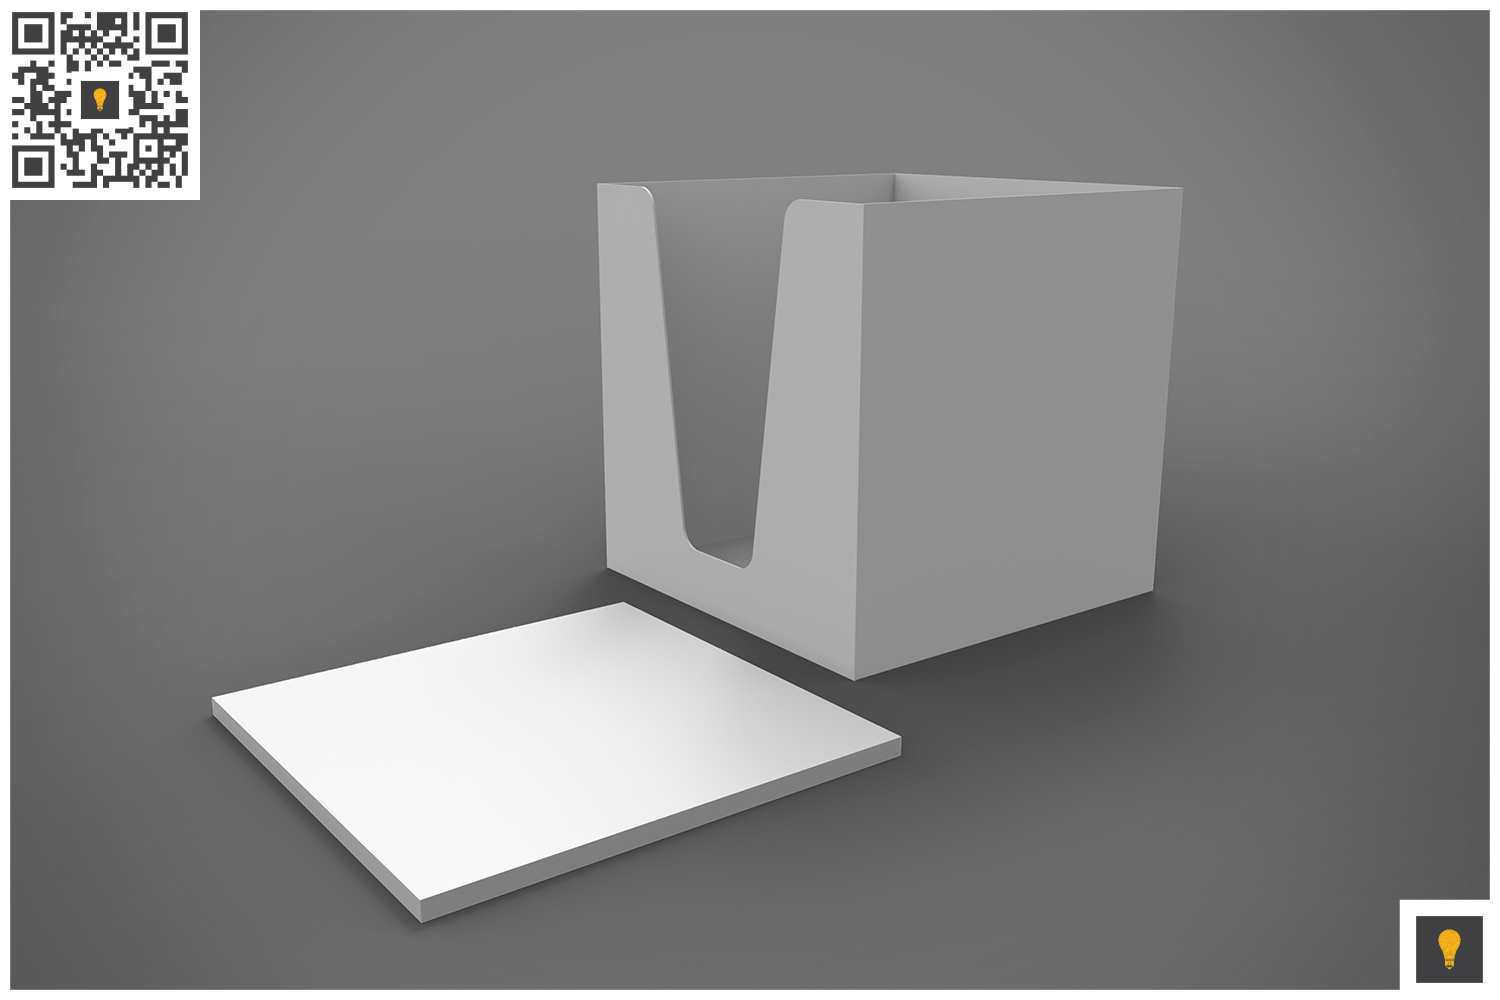 Notepad Holder & Notes 3D Render example image 6